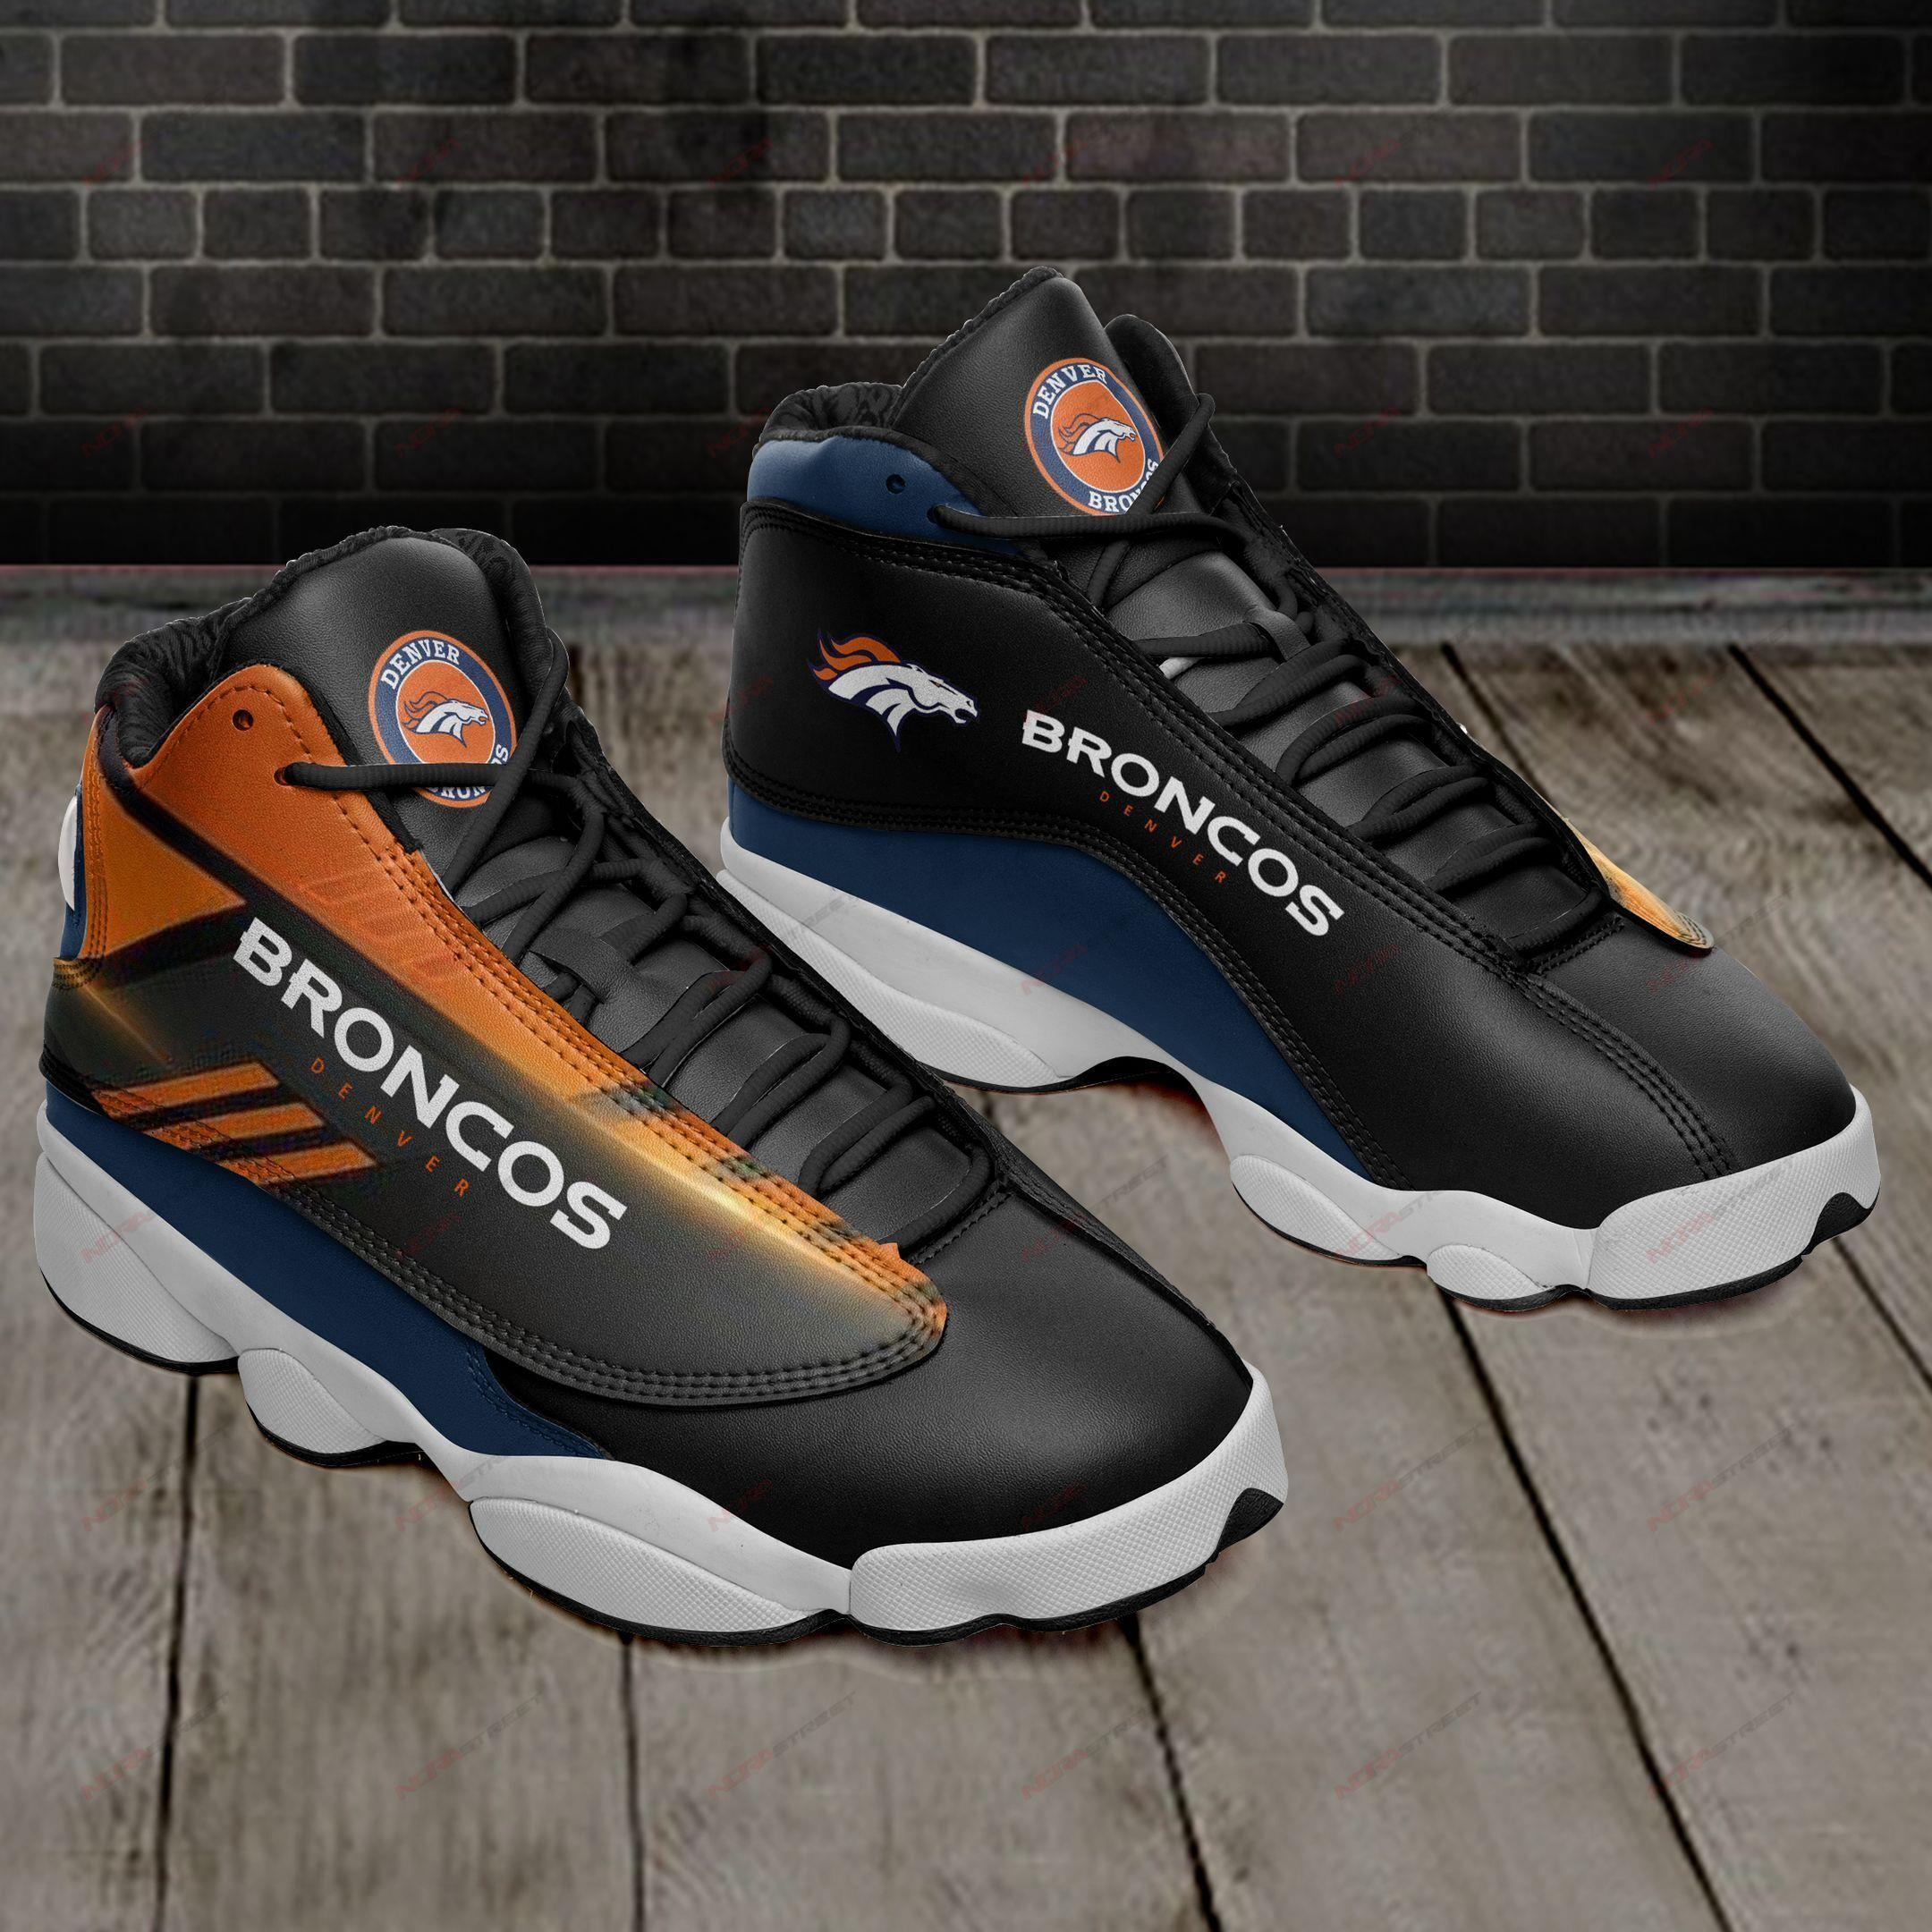 Denver Broncos Air Jordan 13 Sneakers Sport Shoes